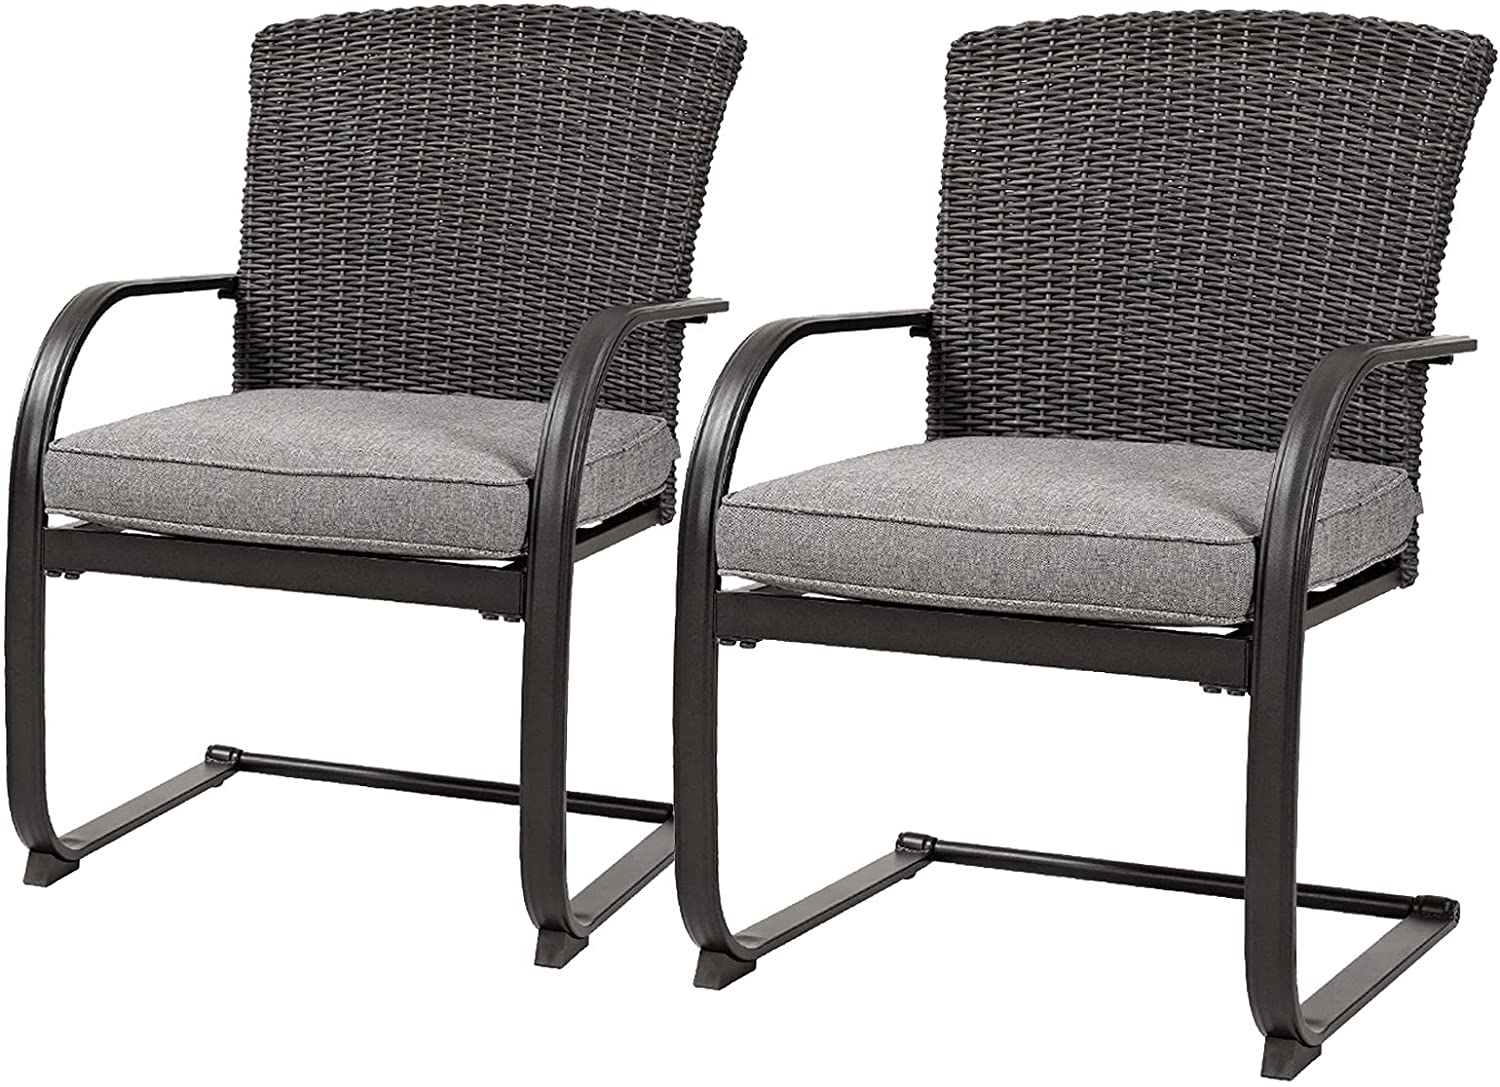 Grand Patio Max 89% OFF Outdoor Seating Spring Set Conversation Outlet ☆ Free Shipping Motion